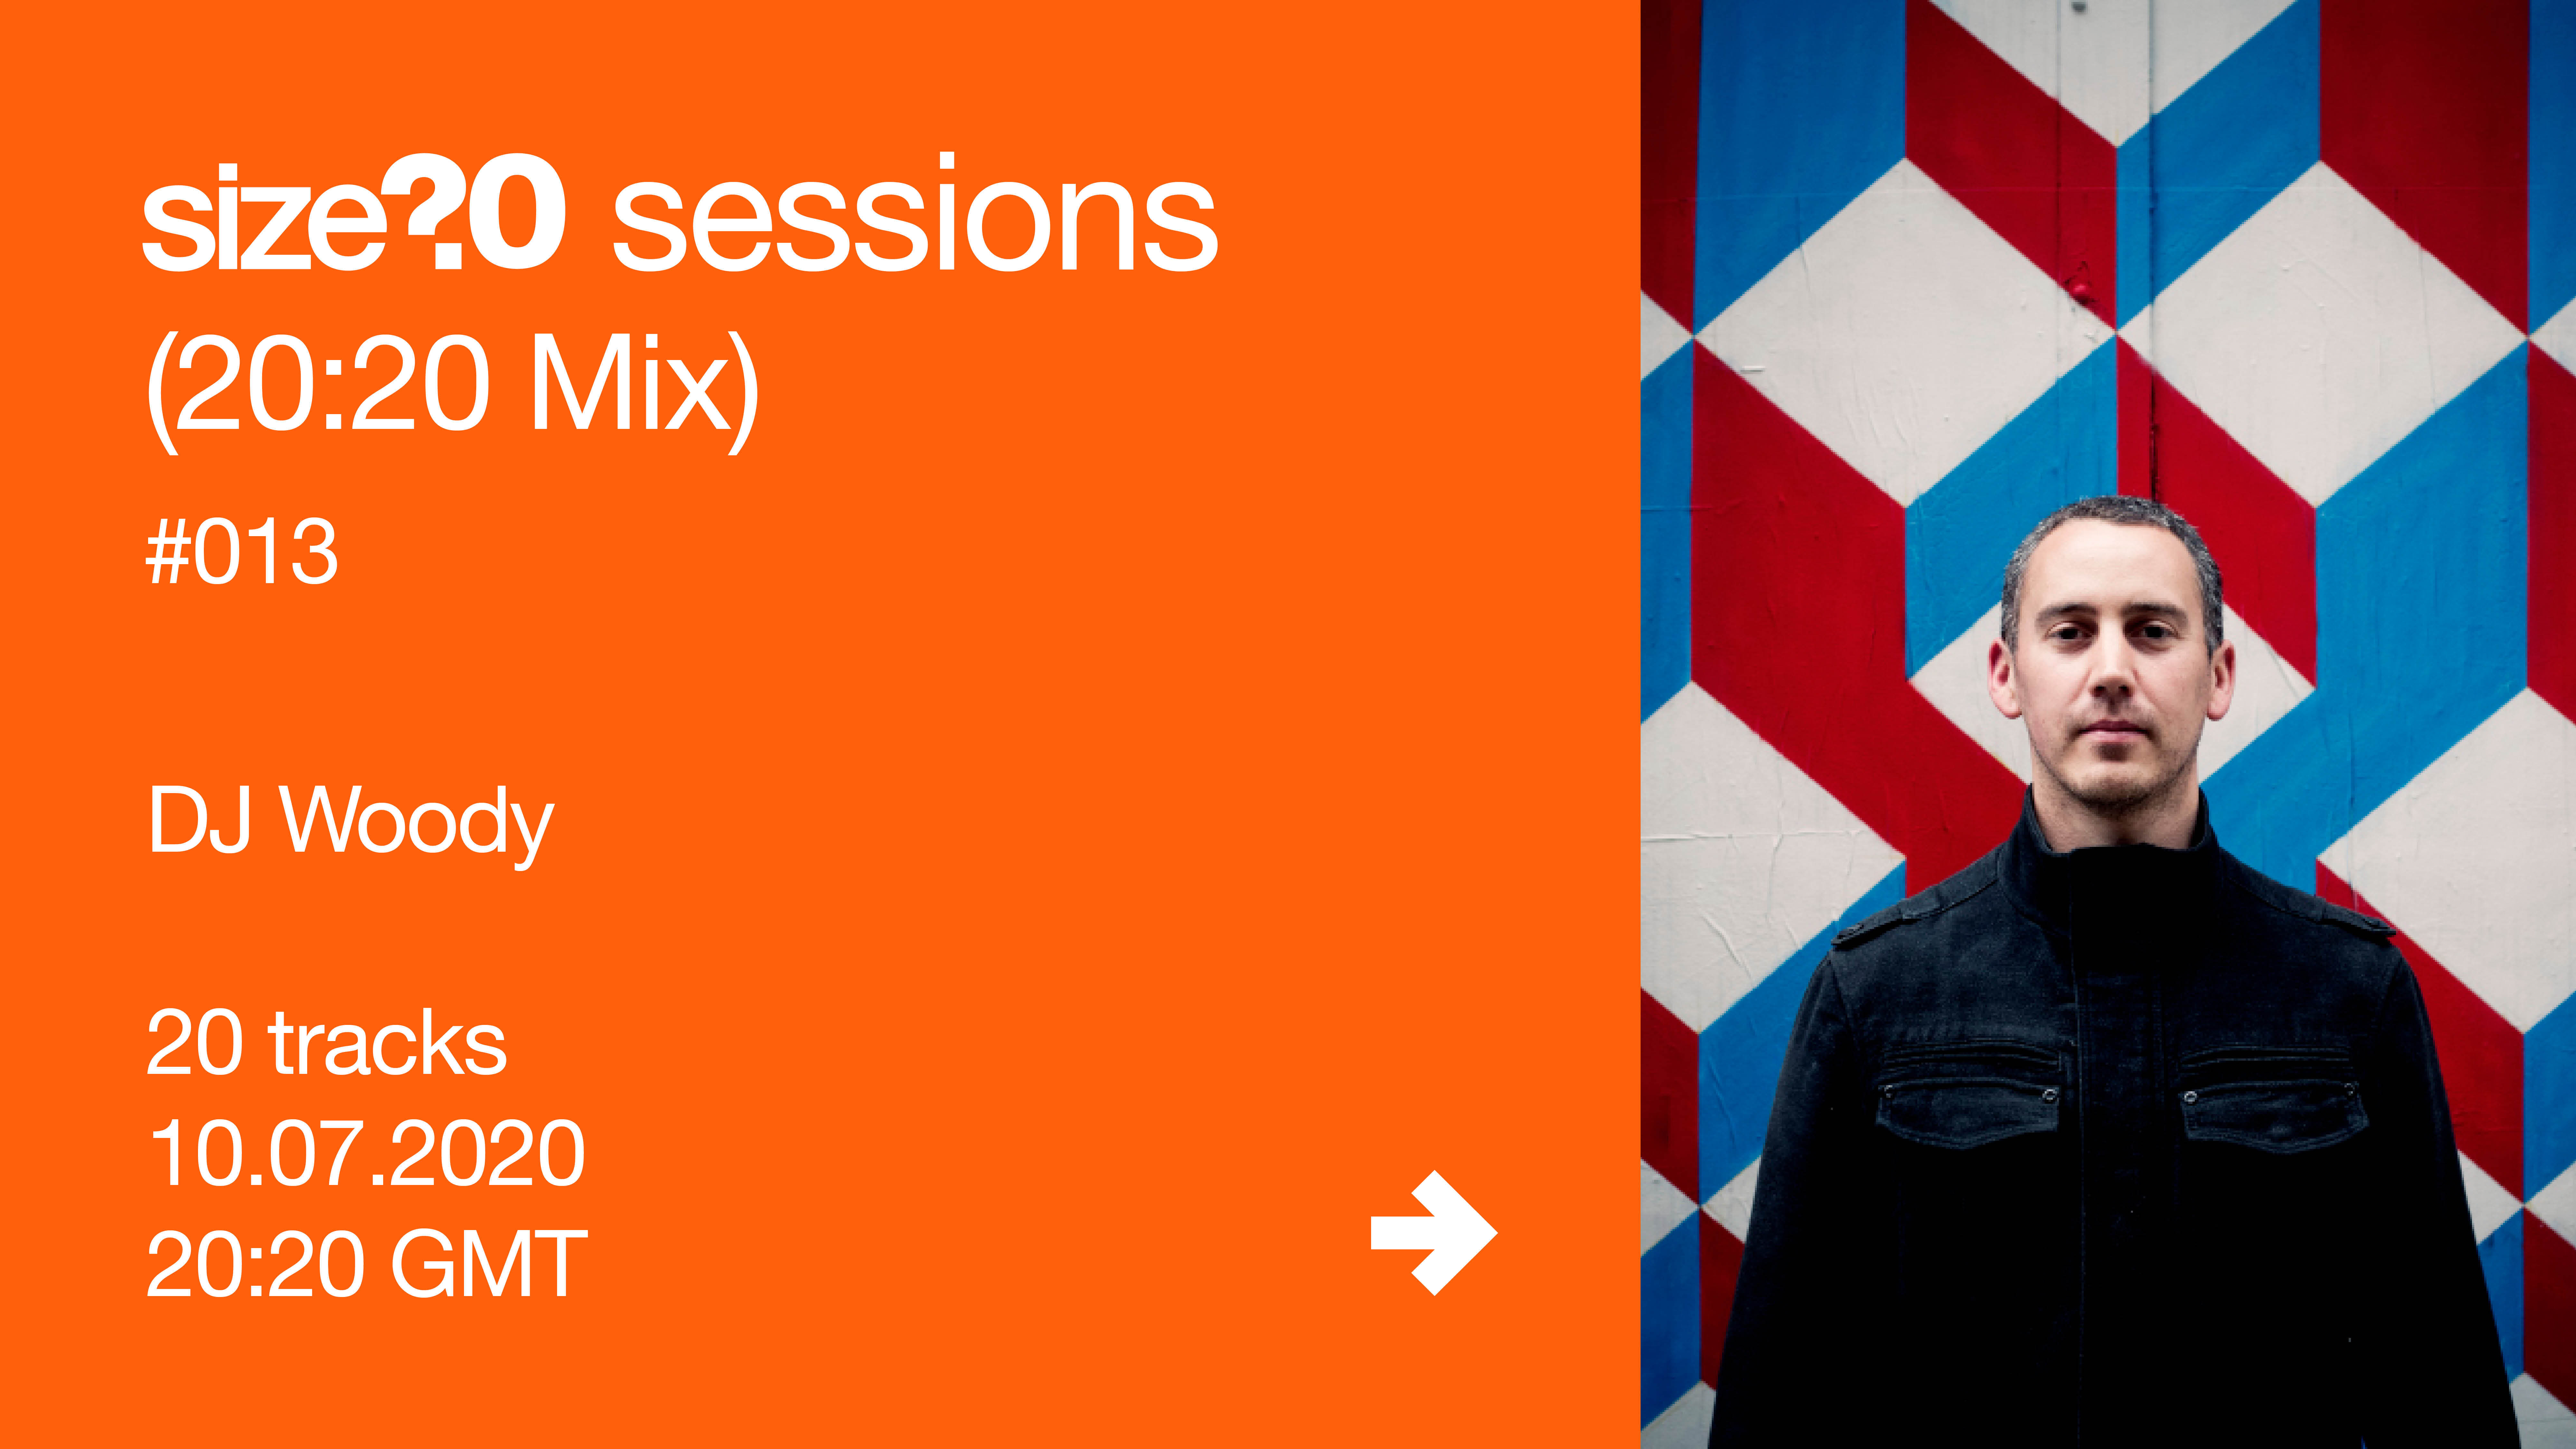 size? sessions (20:20 Mix) #013 - DJ Woody